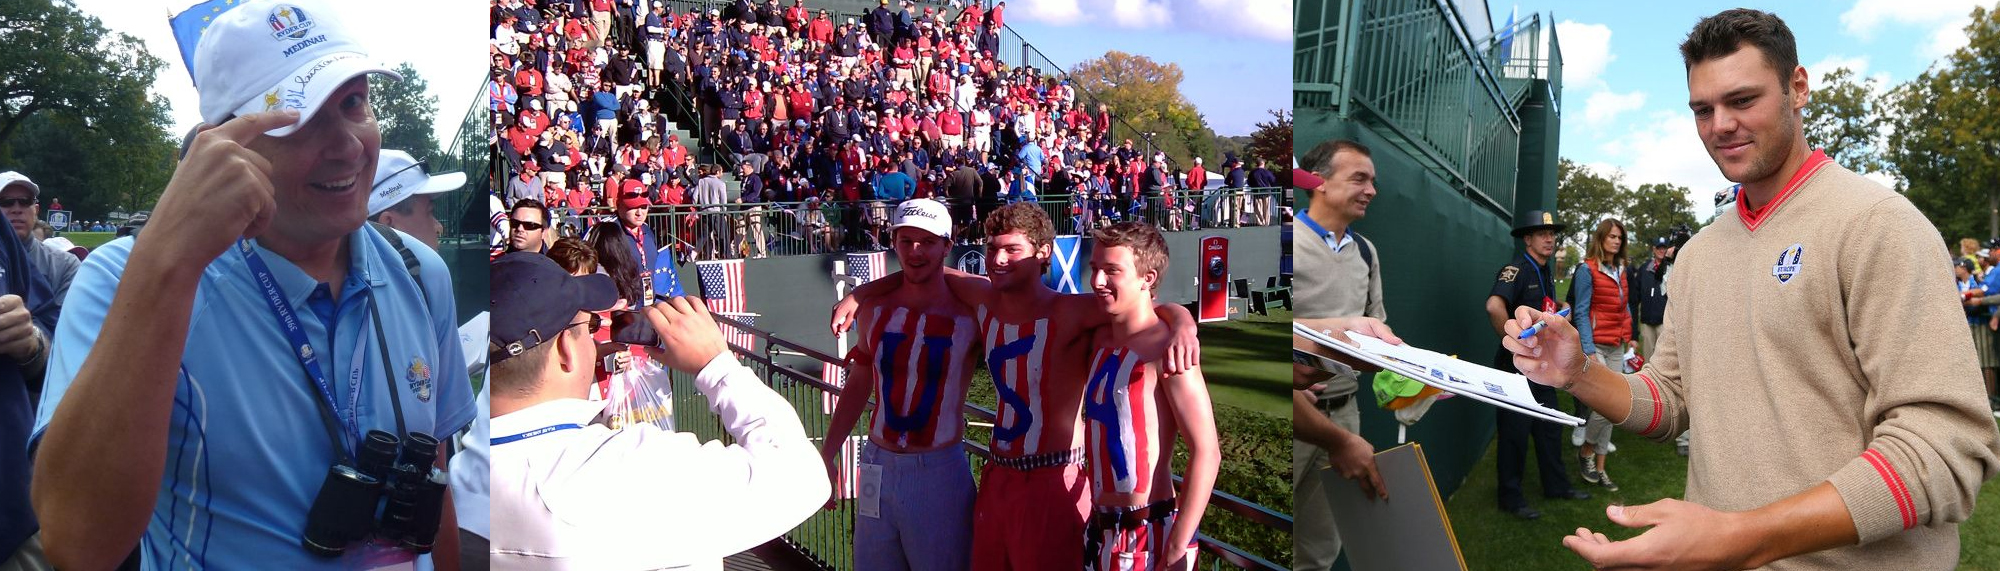 Ryder Cup 2012 - The Miracle of Medinah